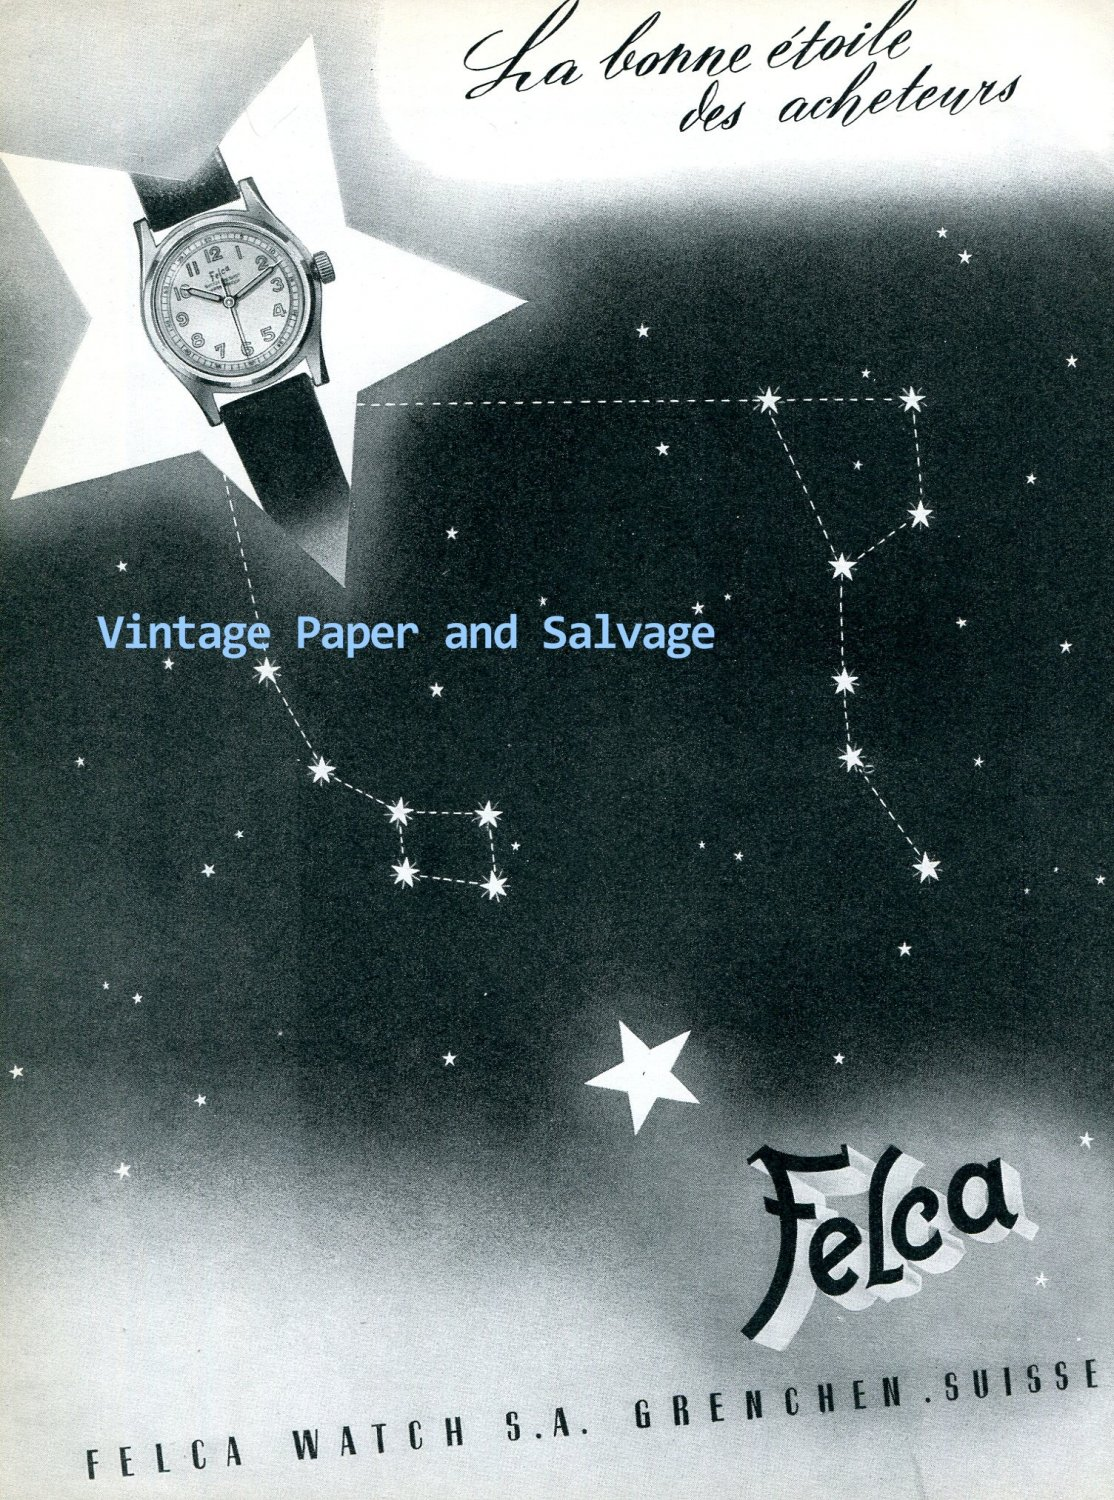 Vintage 1945 Felca Watch Company Grenchen Switzerland 1940s Swiss Ad Advert Suisse Schweiz